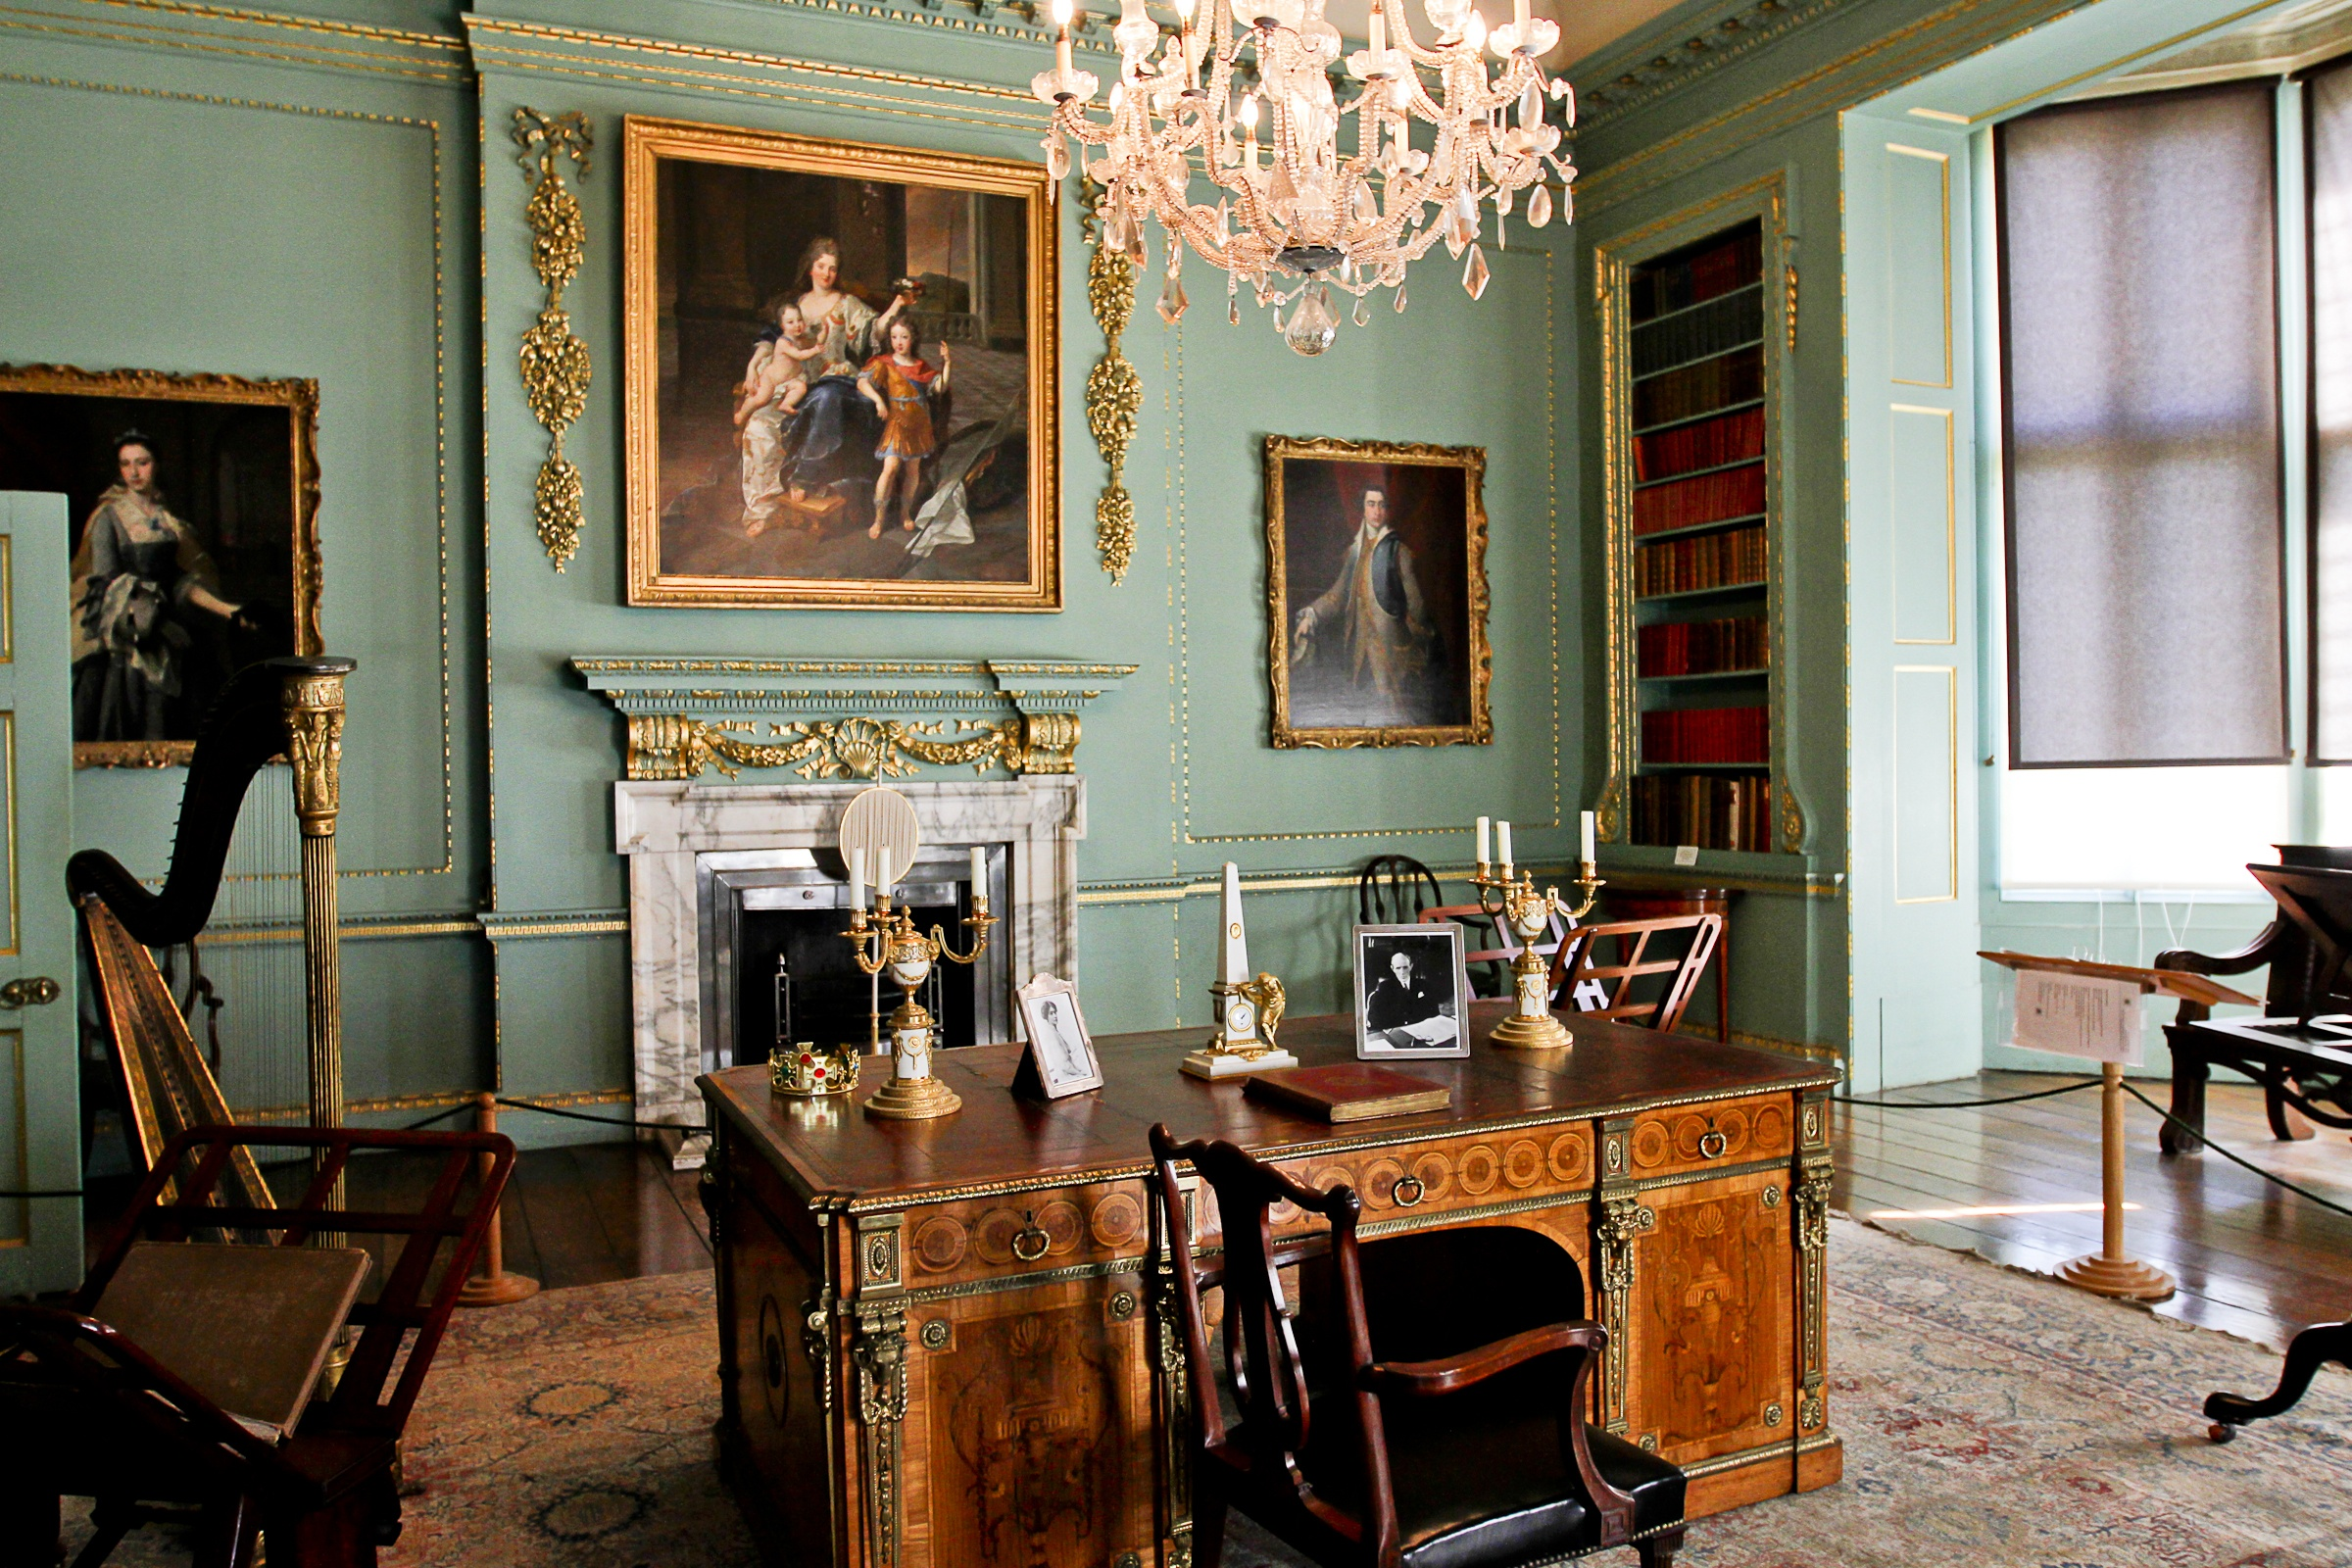 The ornate room at Temple Newsam - credit Leeds City Council